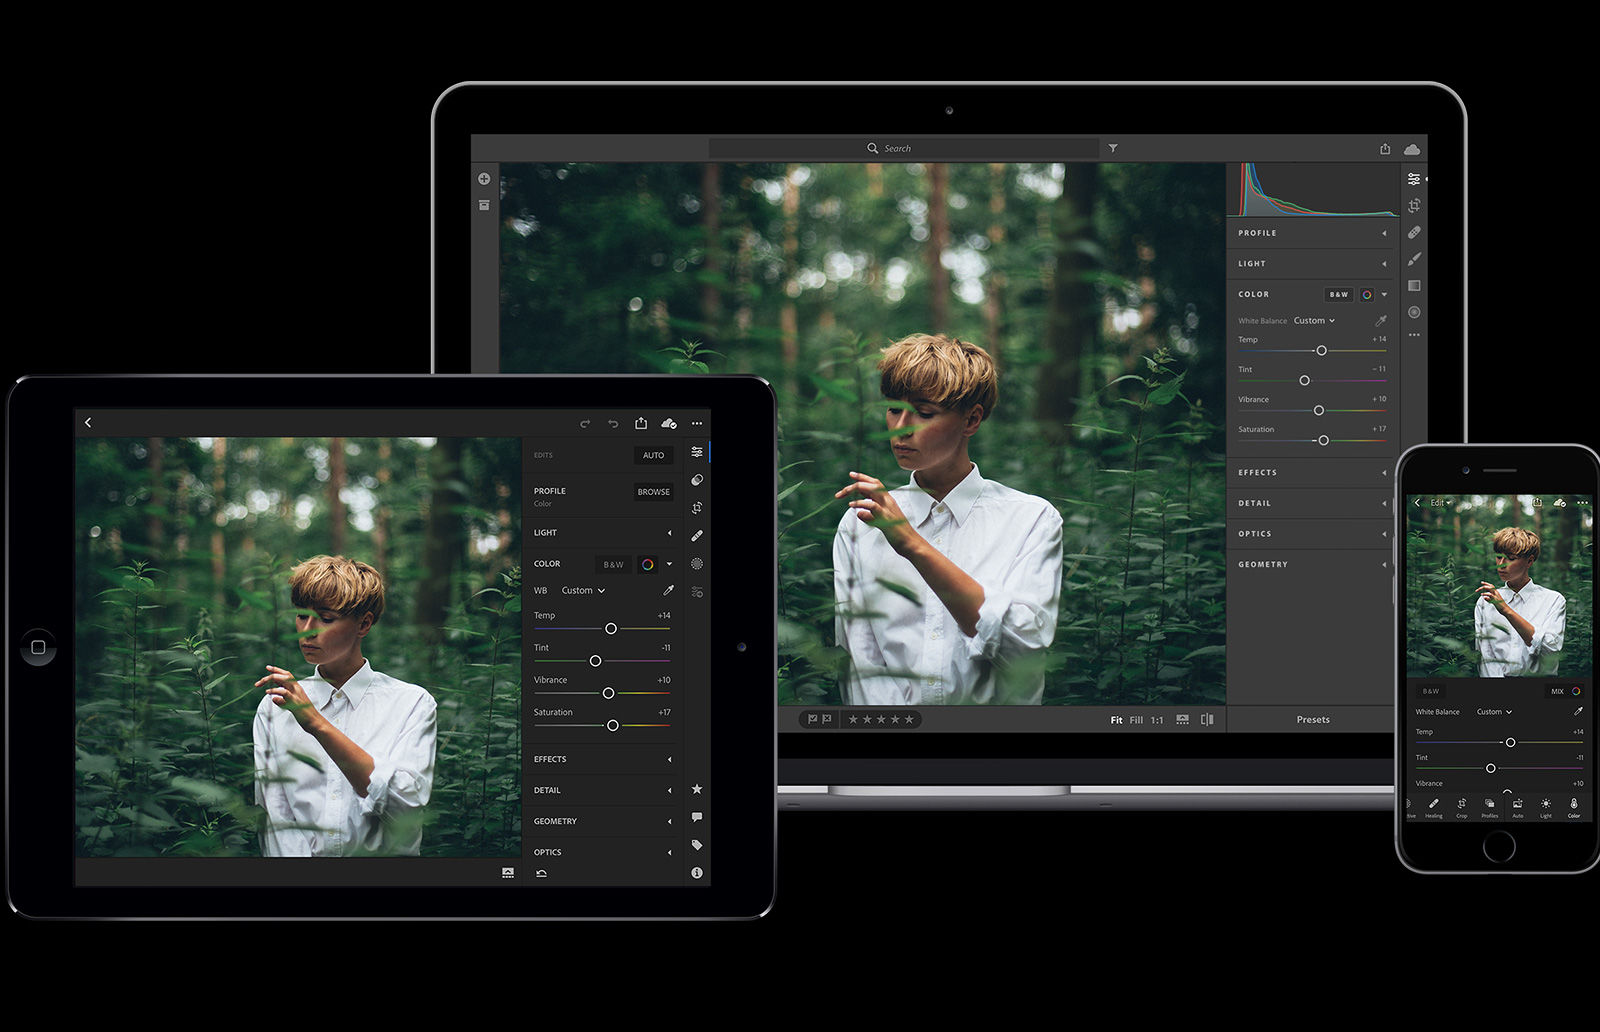 In Adobe Lightroom, images are stored entirely in the cloud. Edits made to an image appear automatically on all other synced devices.